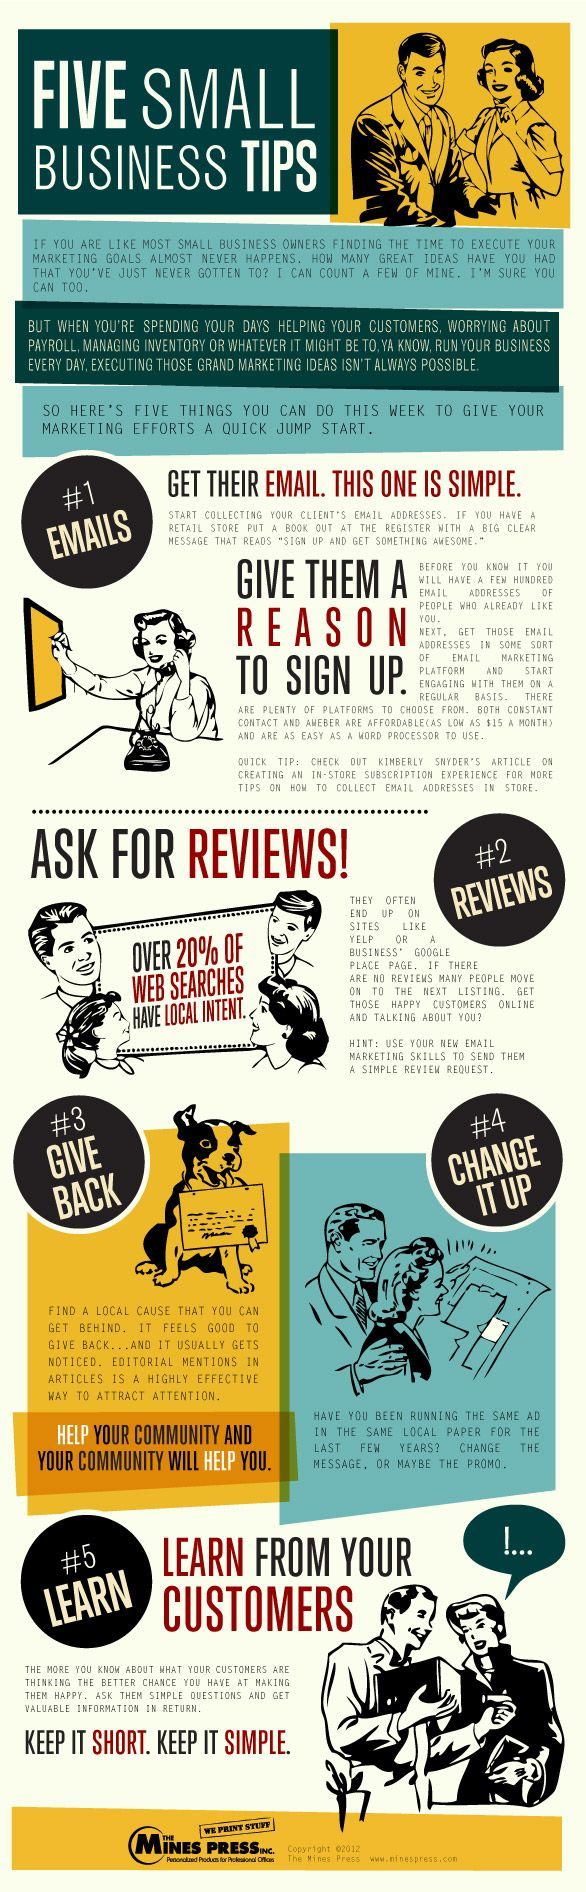 Five small business tips #infographic